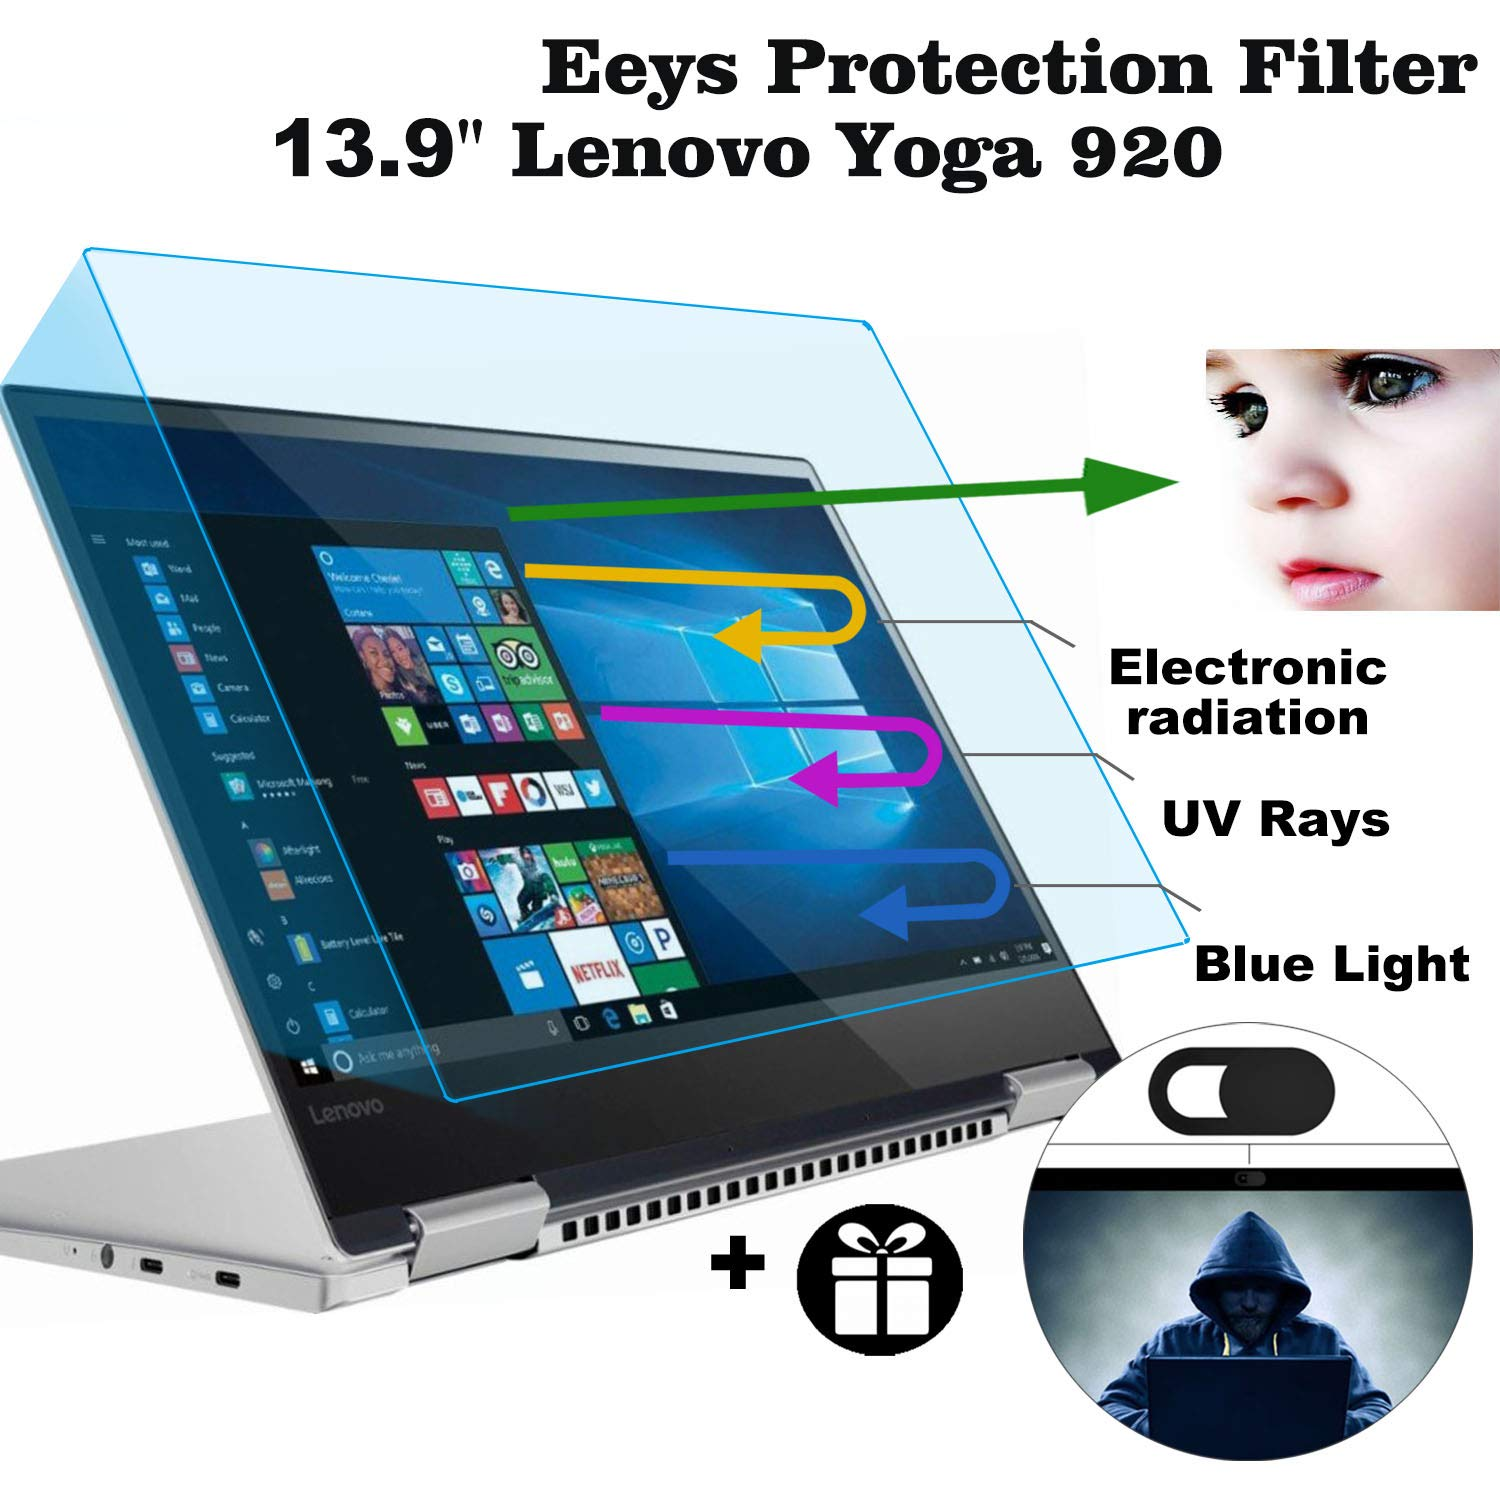 2 Pack Eyes Protection Filter Fit 13.9'' Lenovo Yoga 920 2-in-1 Touch-Screen Laptop, MUBUY 13.9'' AntiBlueLight & Glare Screen Protector Reduces Digital Eye Strain Help You Sleep Better by MUBUY (Image #1)